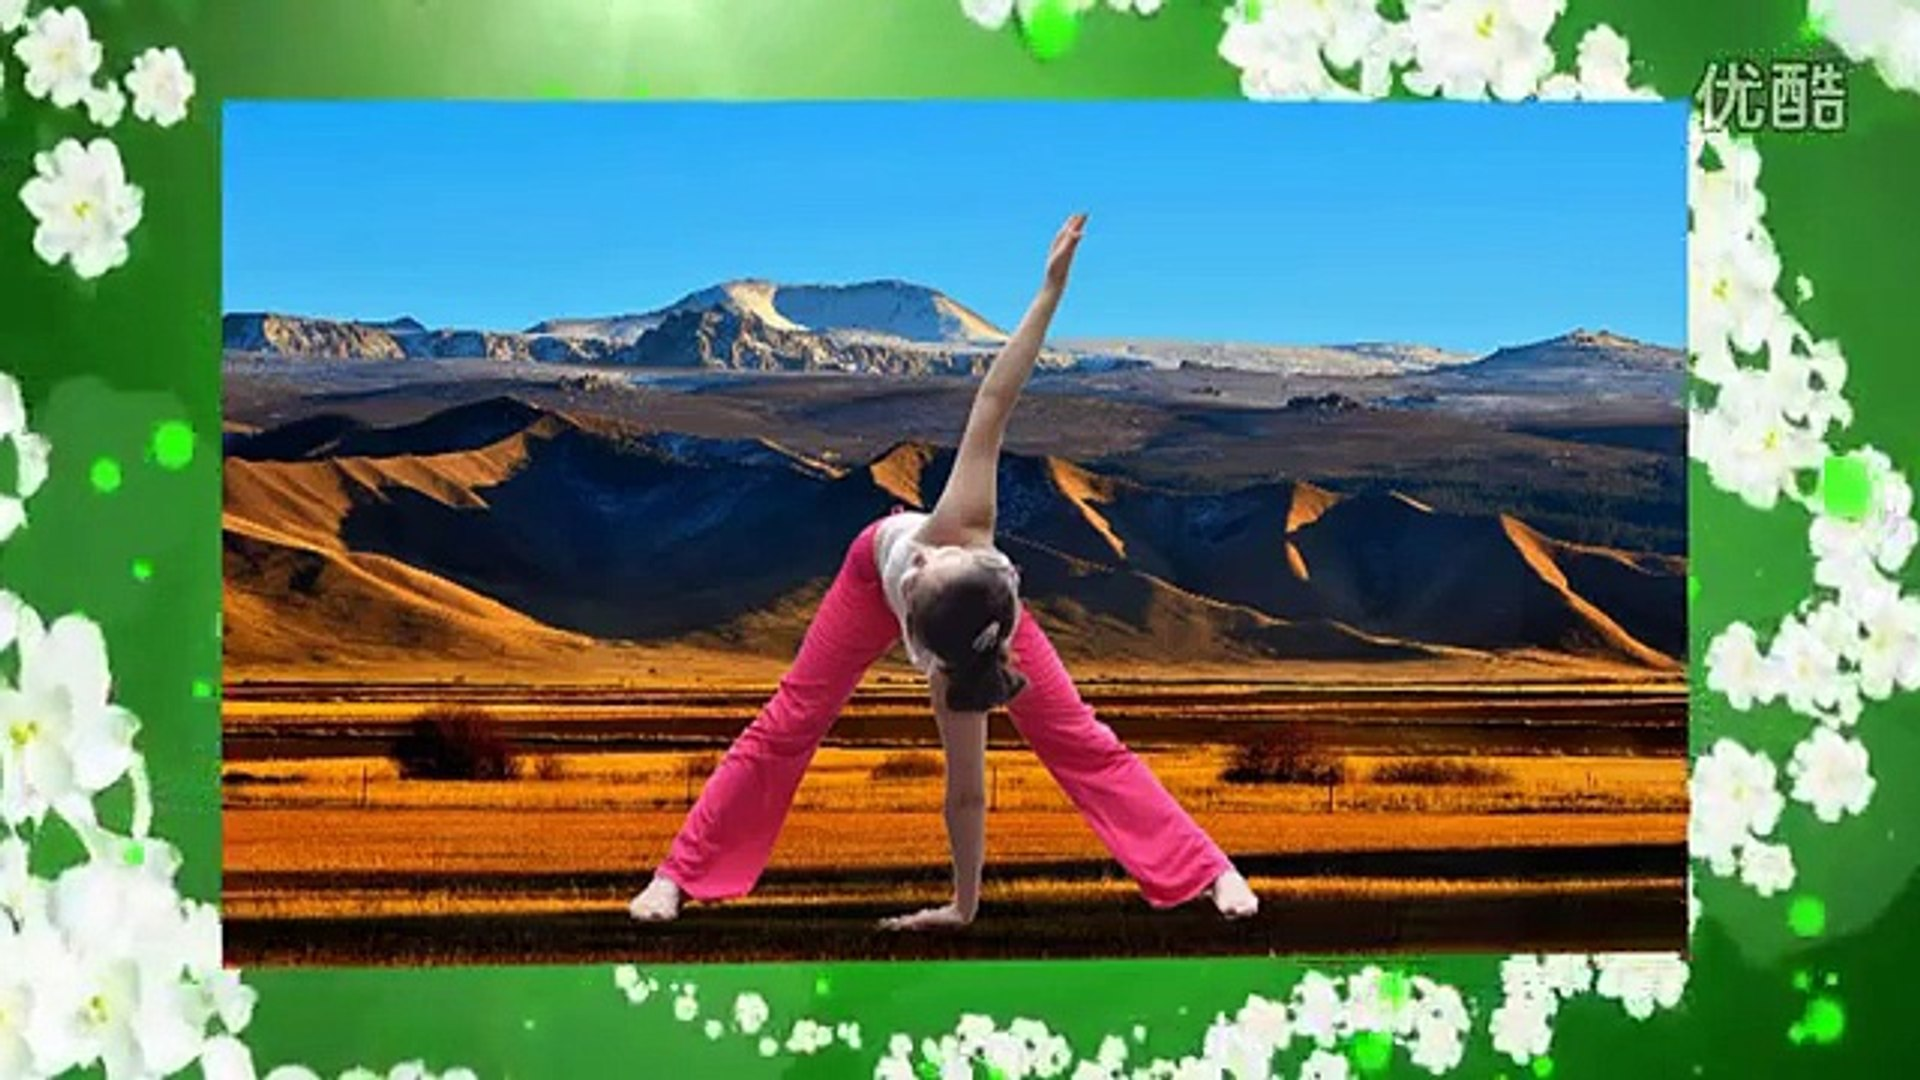 71 Movement exercises five days lost eight pounds of weight loss aerobics dance five days lost 7 pou